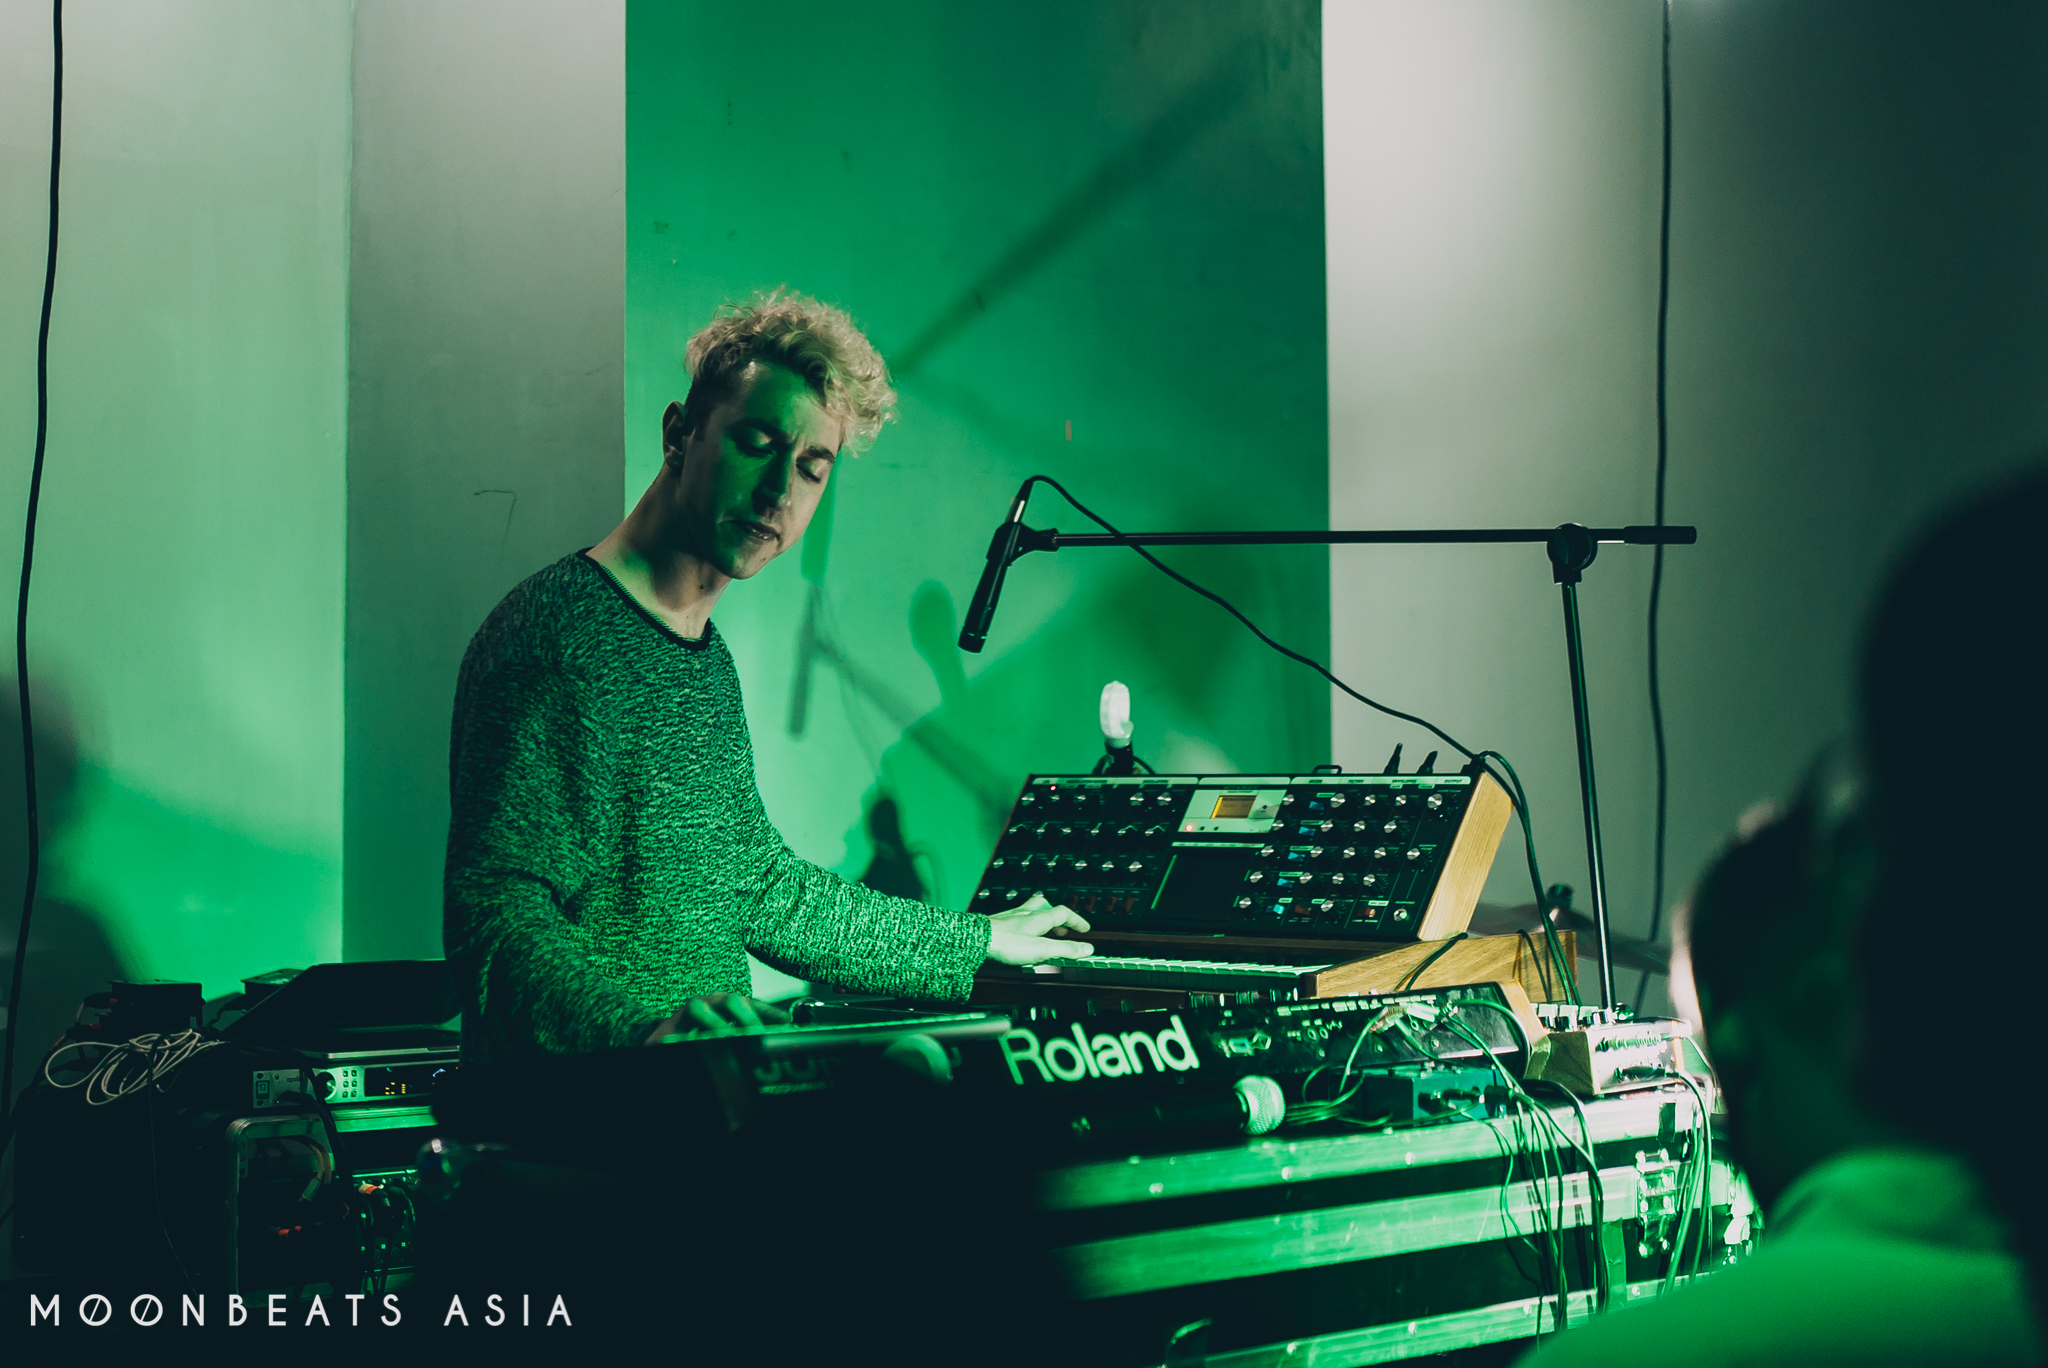 MOONBEATS ASIA / Chrome Sparks